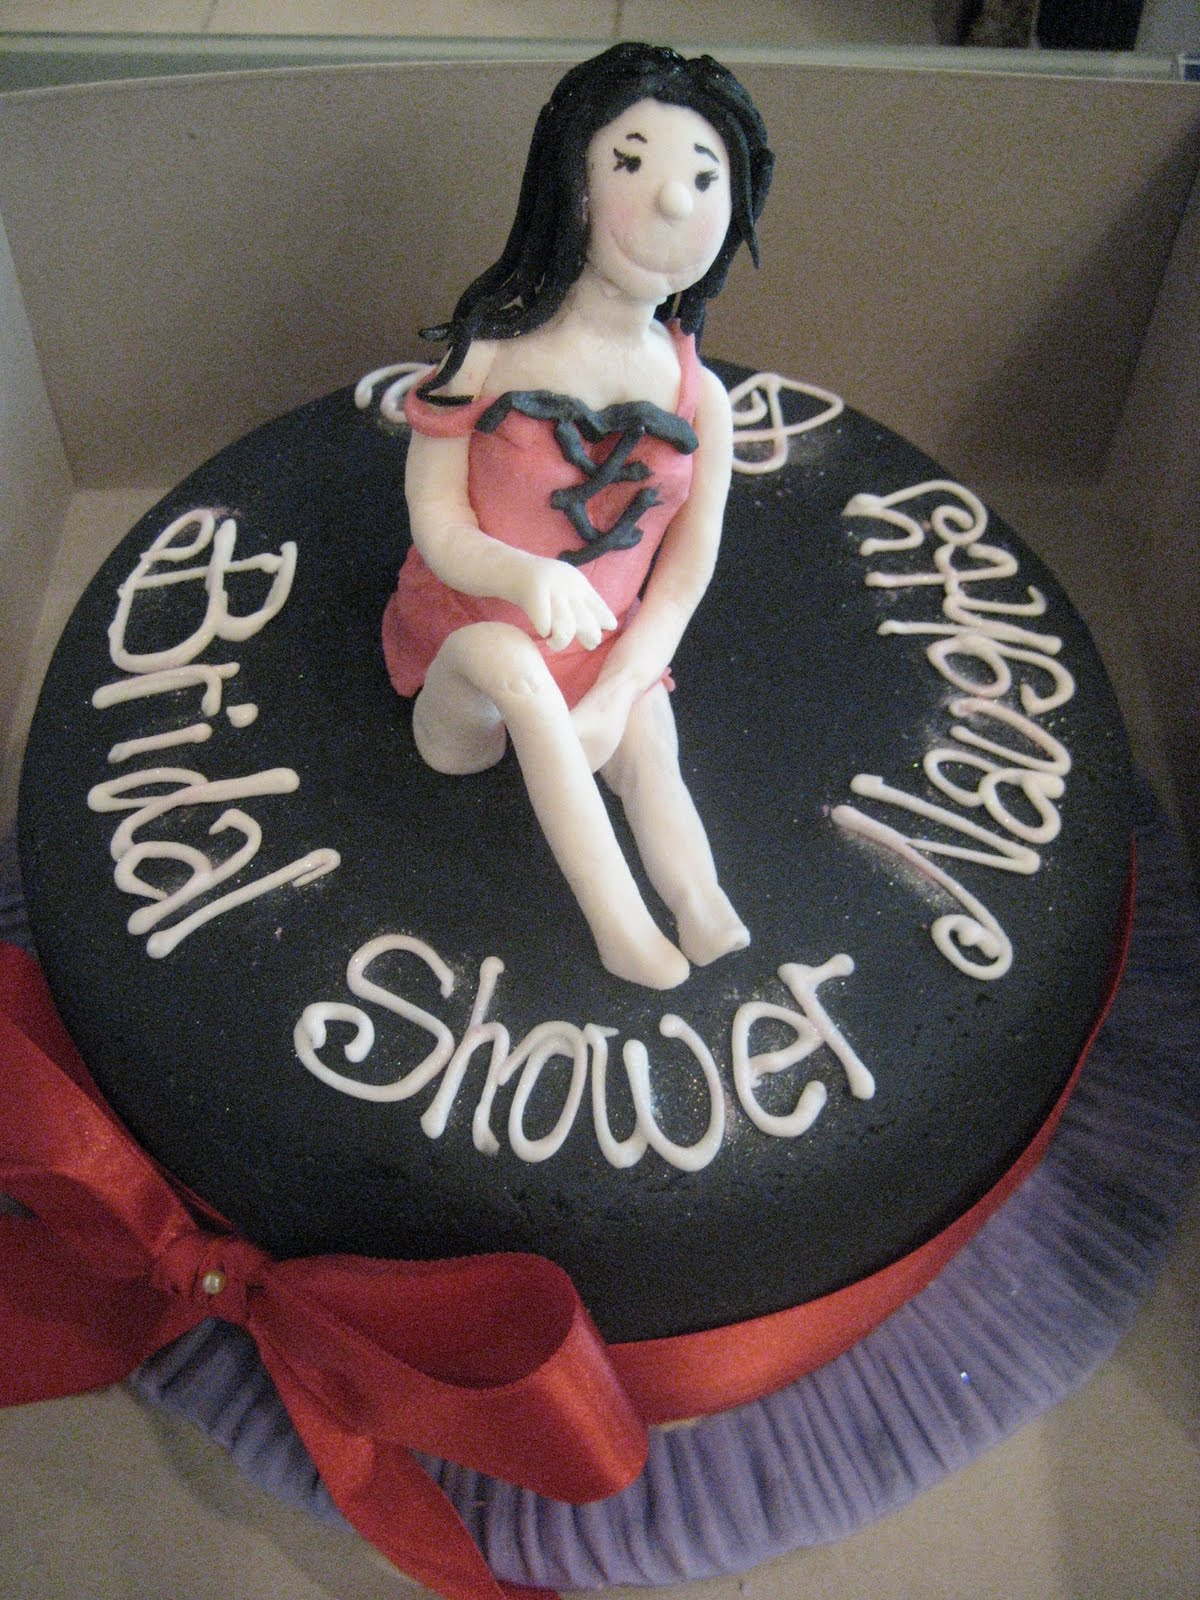 i had a request for a naughty and nice bridal shower cake this was fun to make but reckon the girl could have been sexier